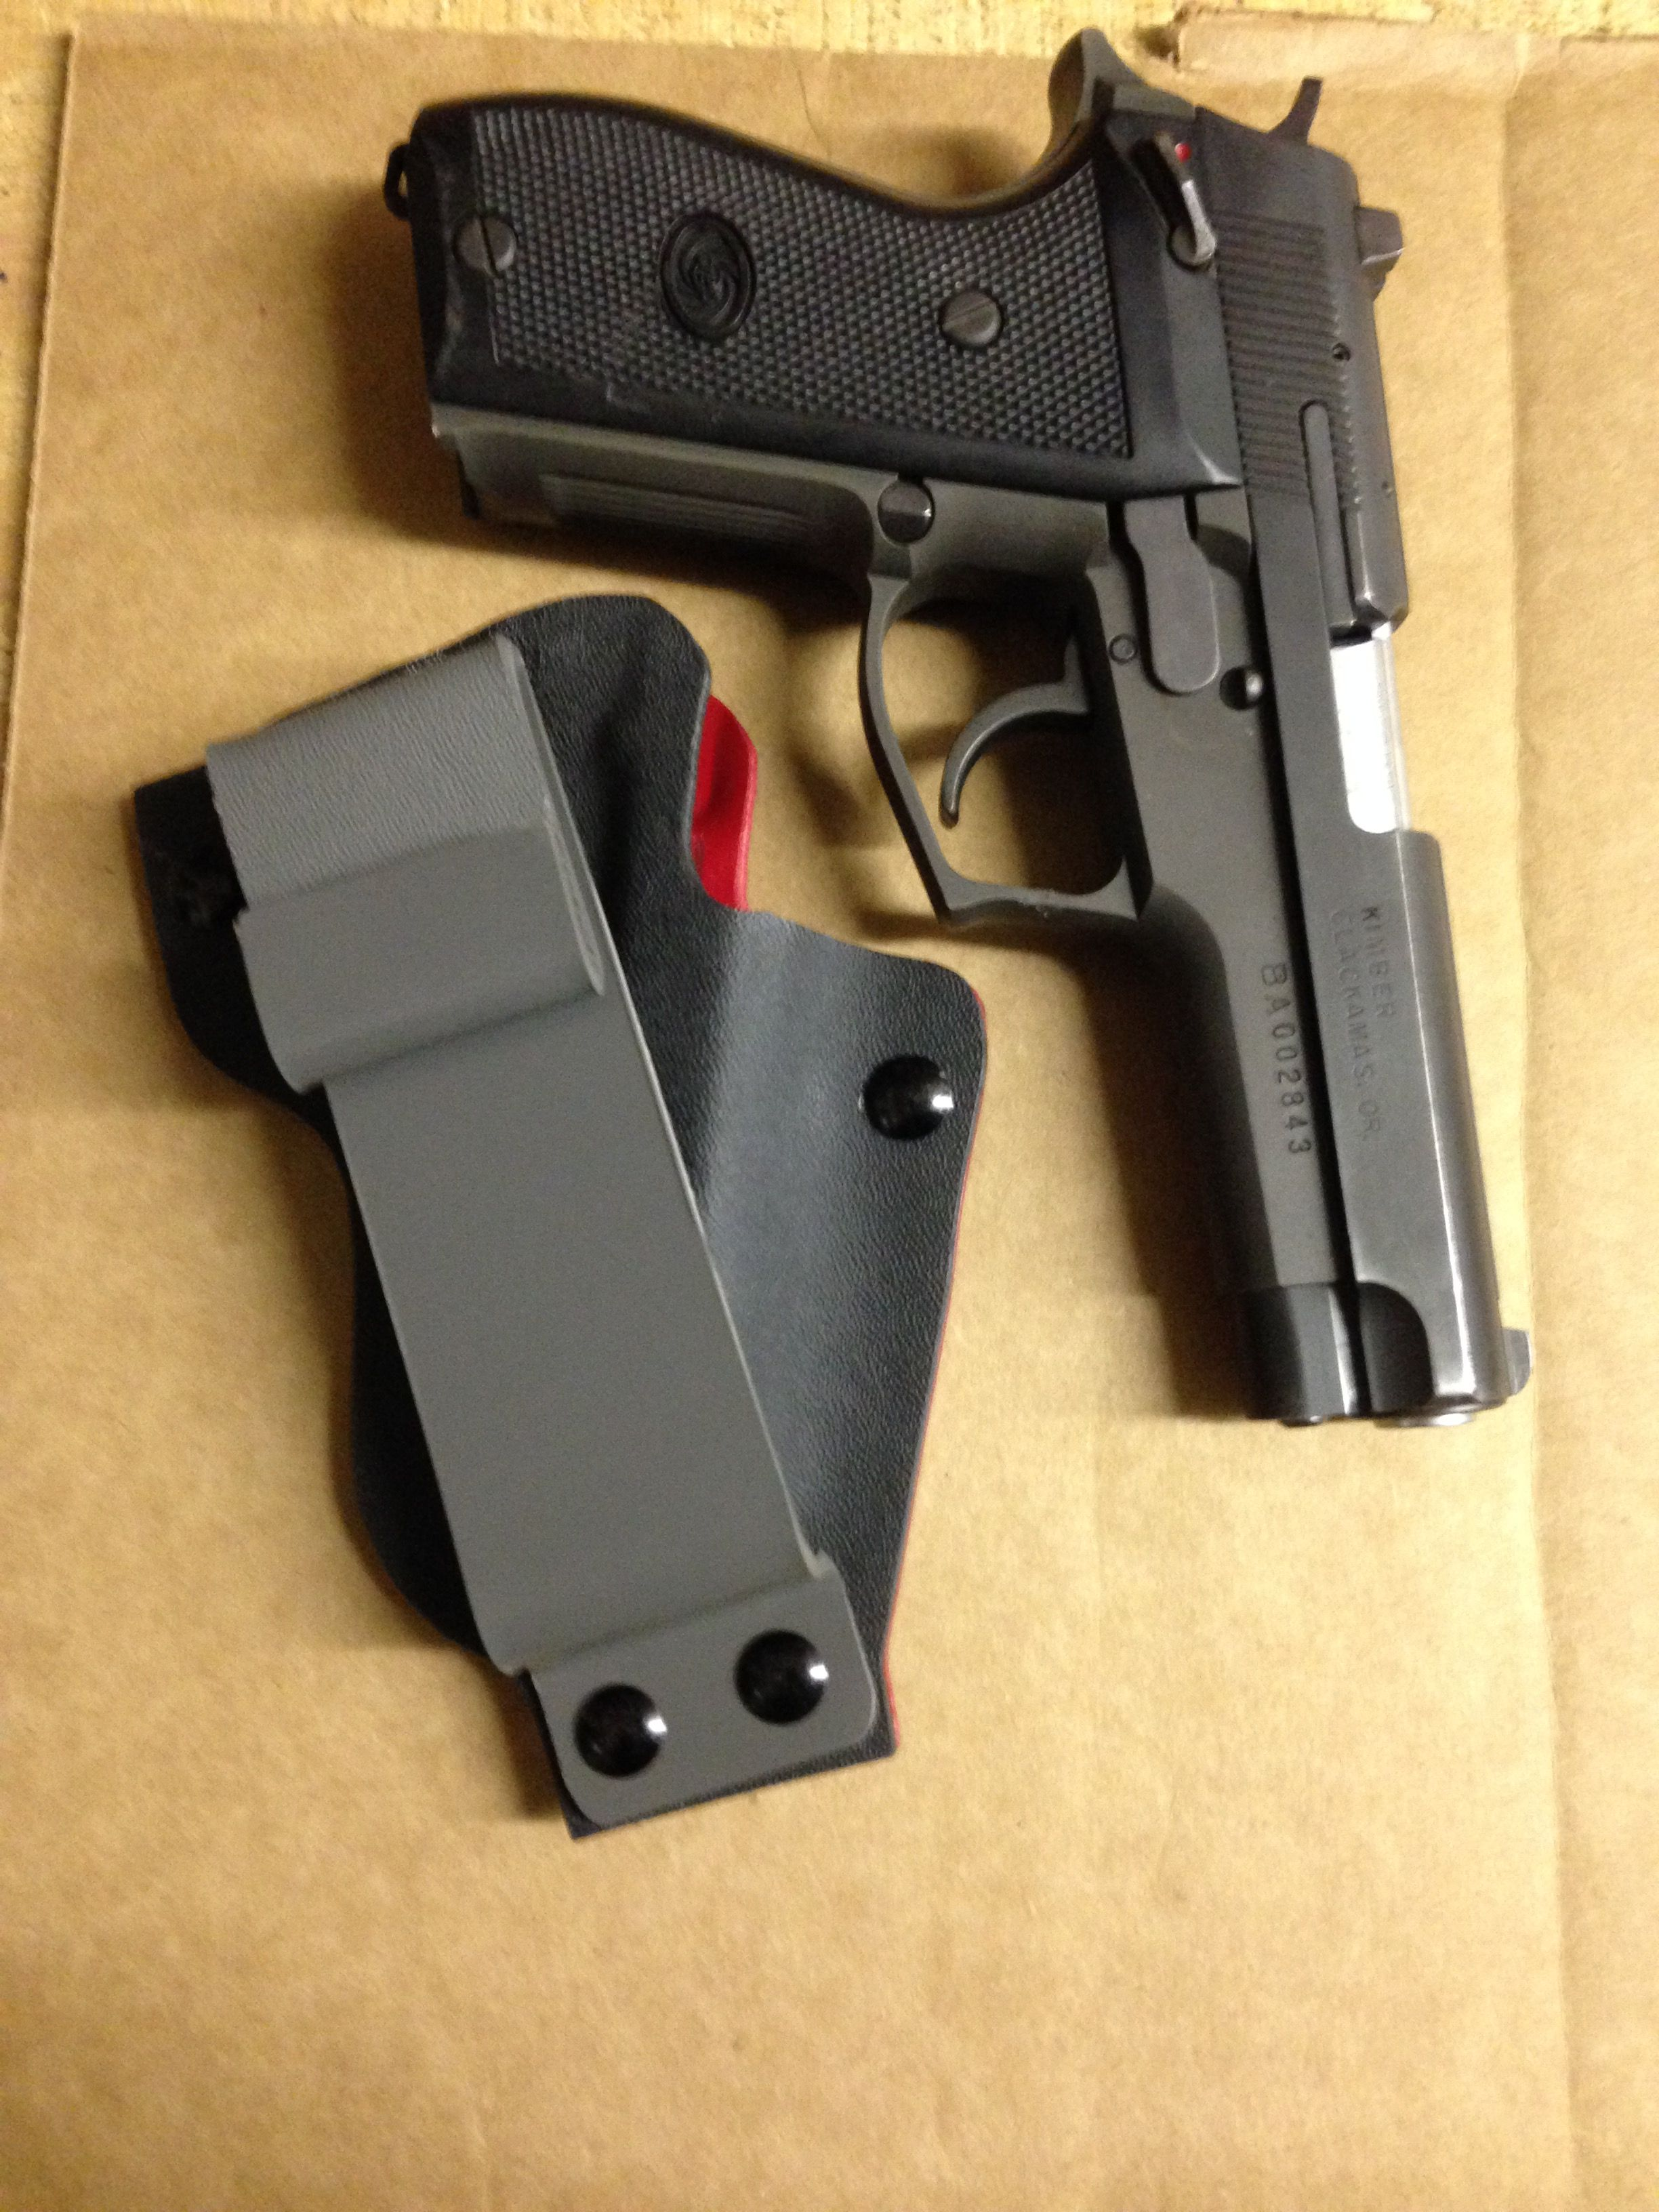 hight resolution of daewoo dp 51 9mm ambidextrous iwb kydex holster i made todayloading that magazine is a